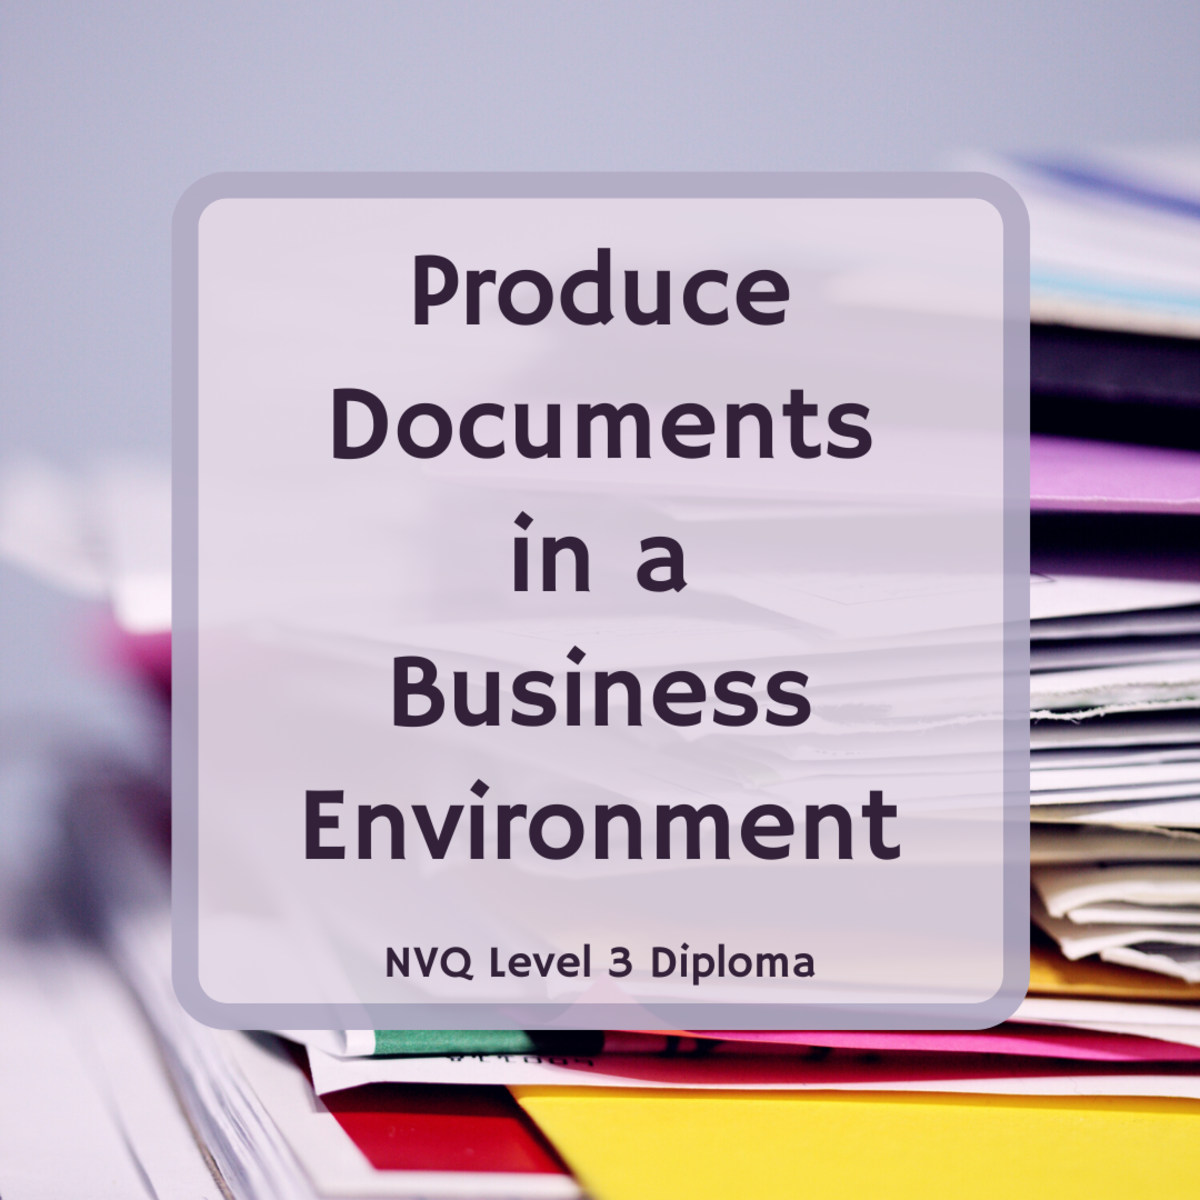 Review the policies and procedures related to creating high-quality business documents.